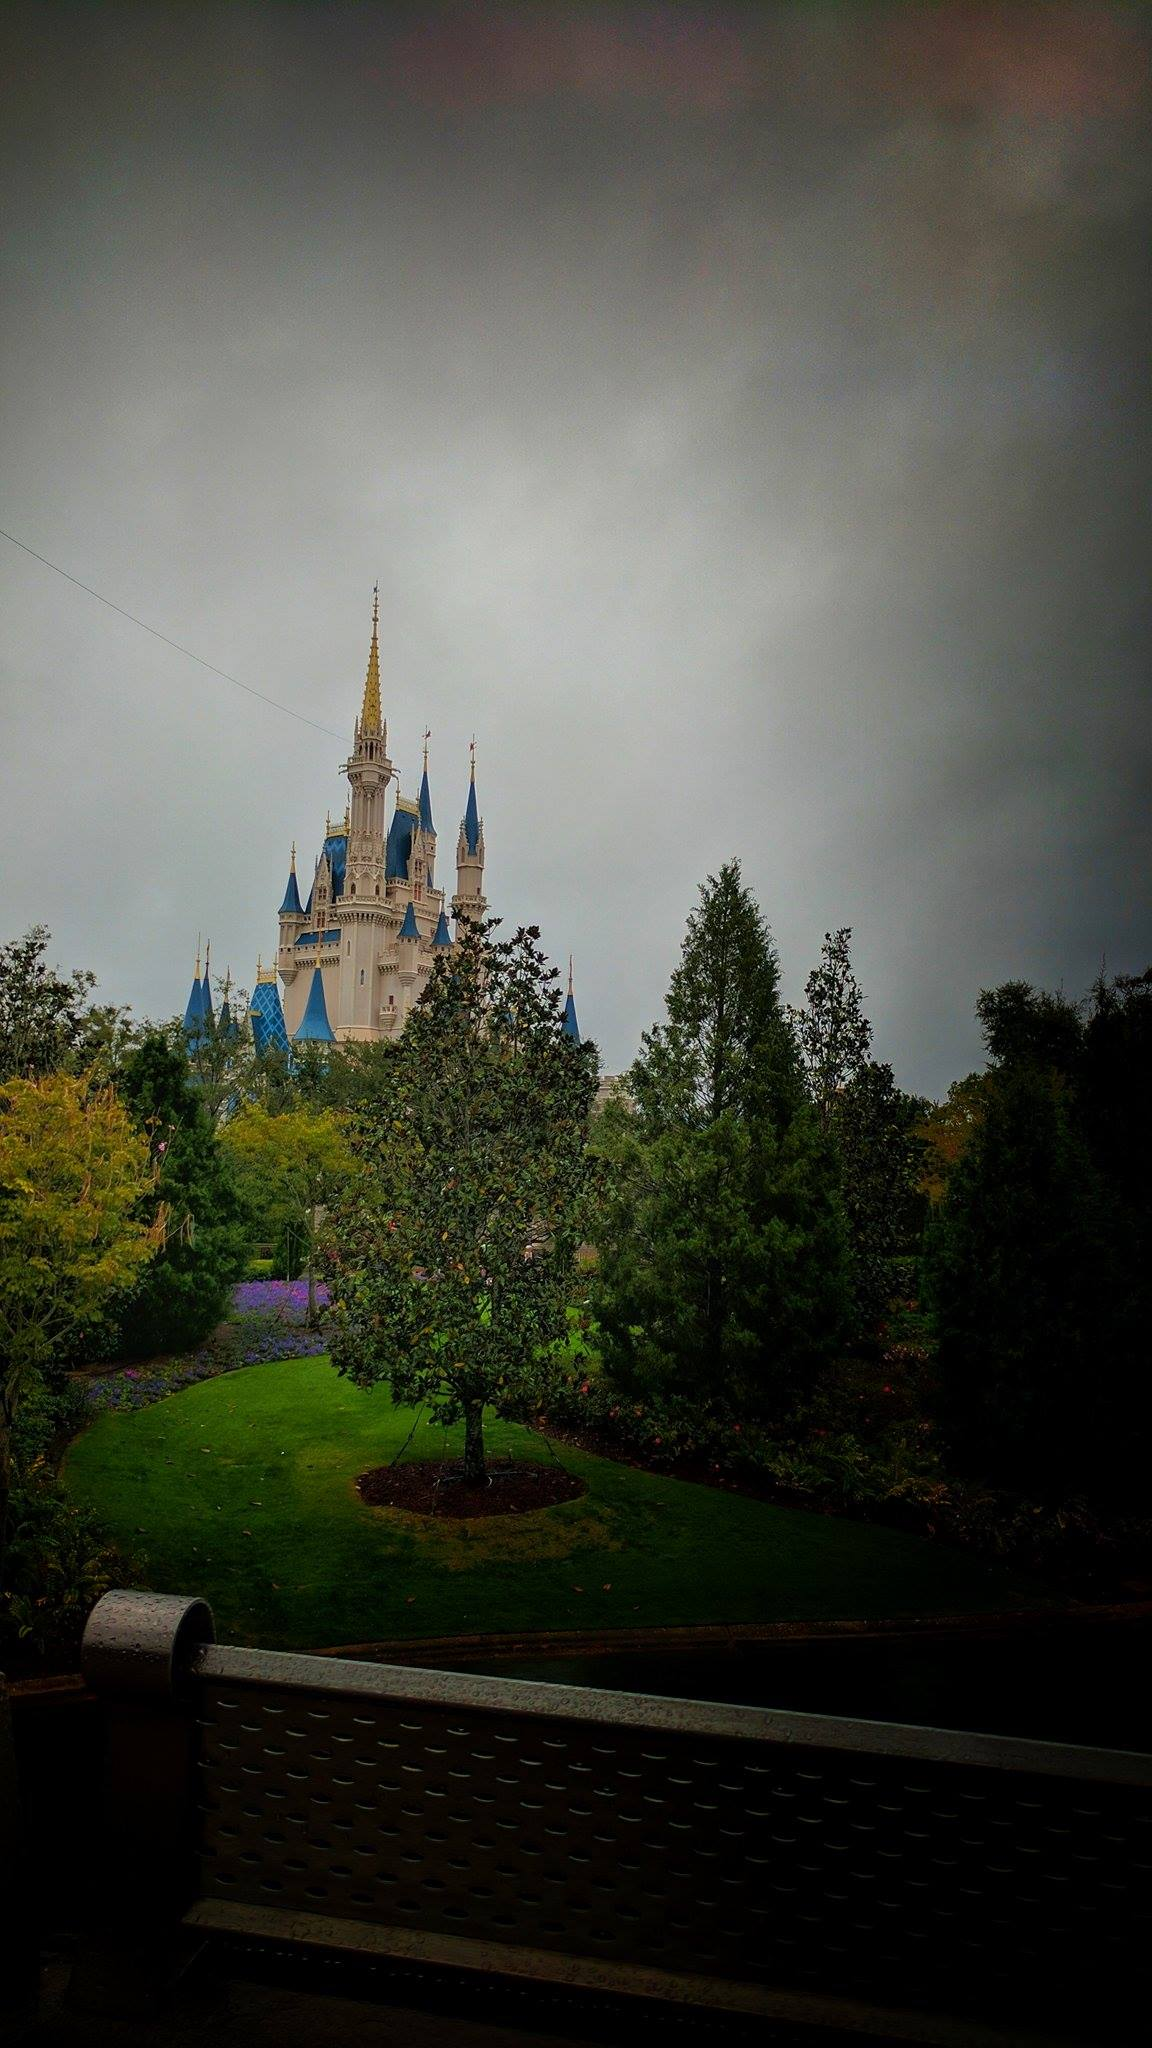 Vacation Kingdom Know How: Rainy Days at WDW